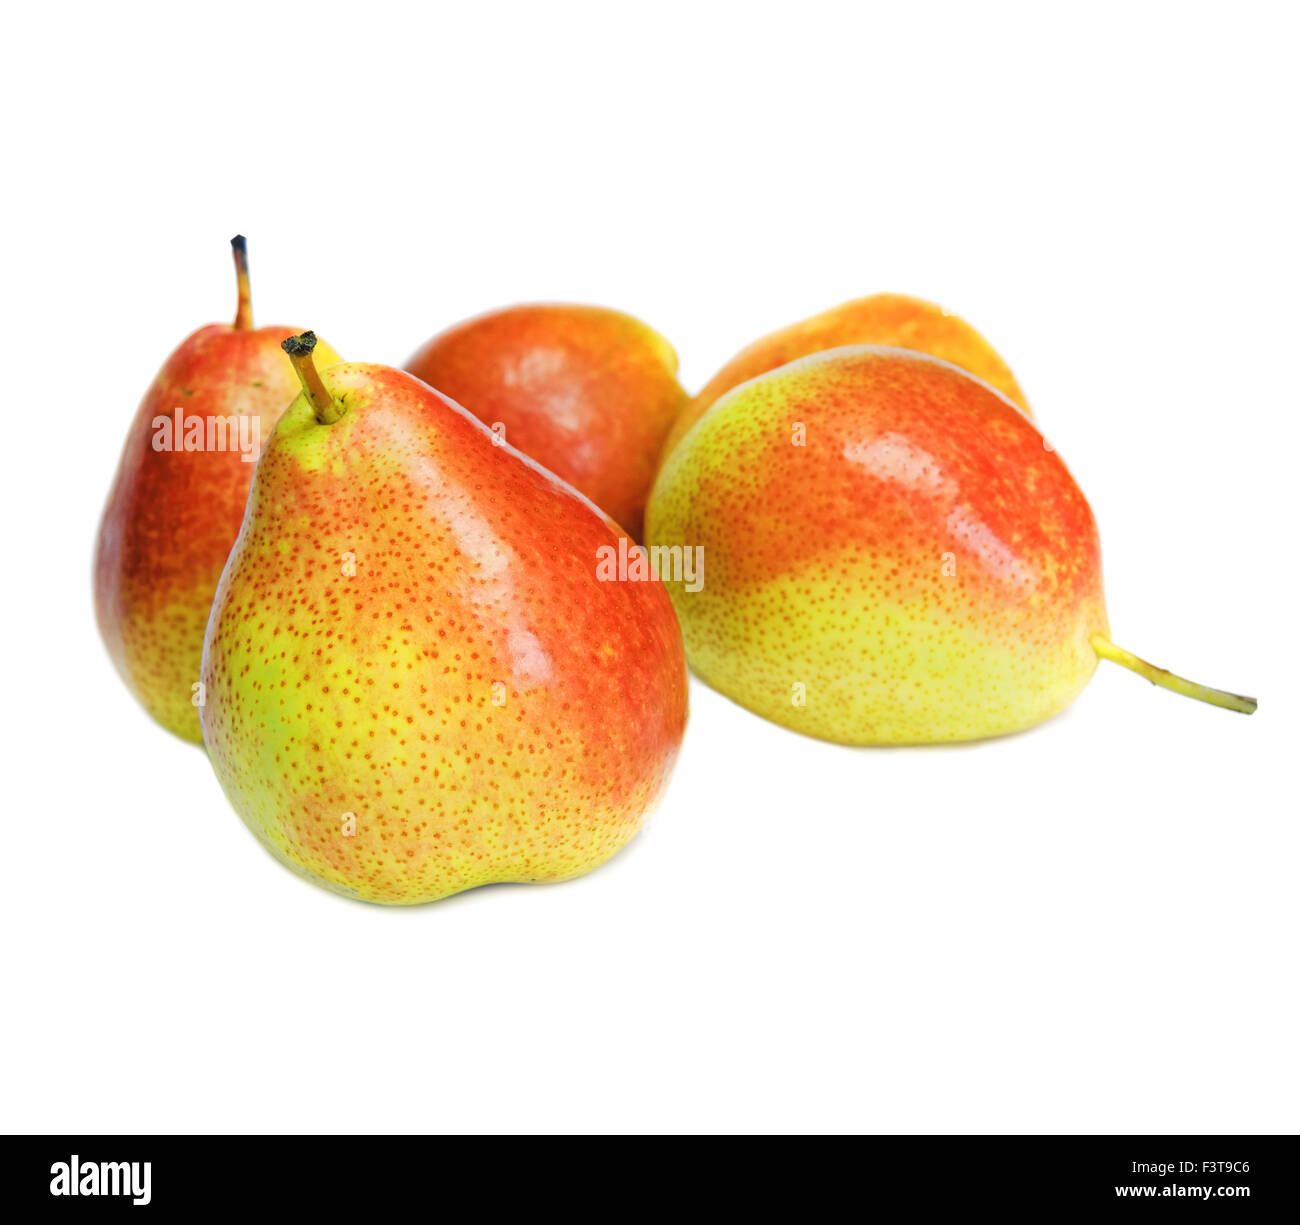 Pears isolated - Stock Image